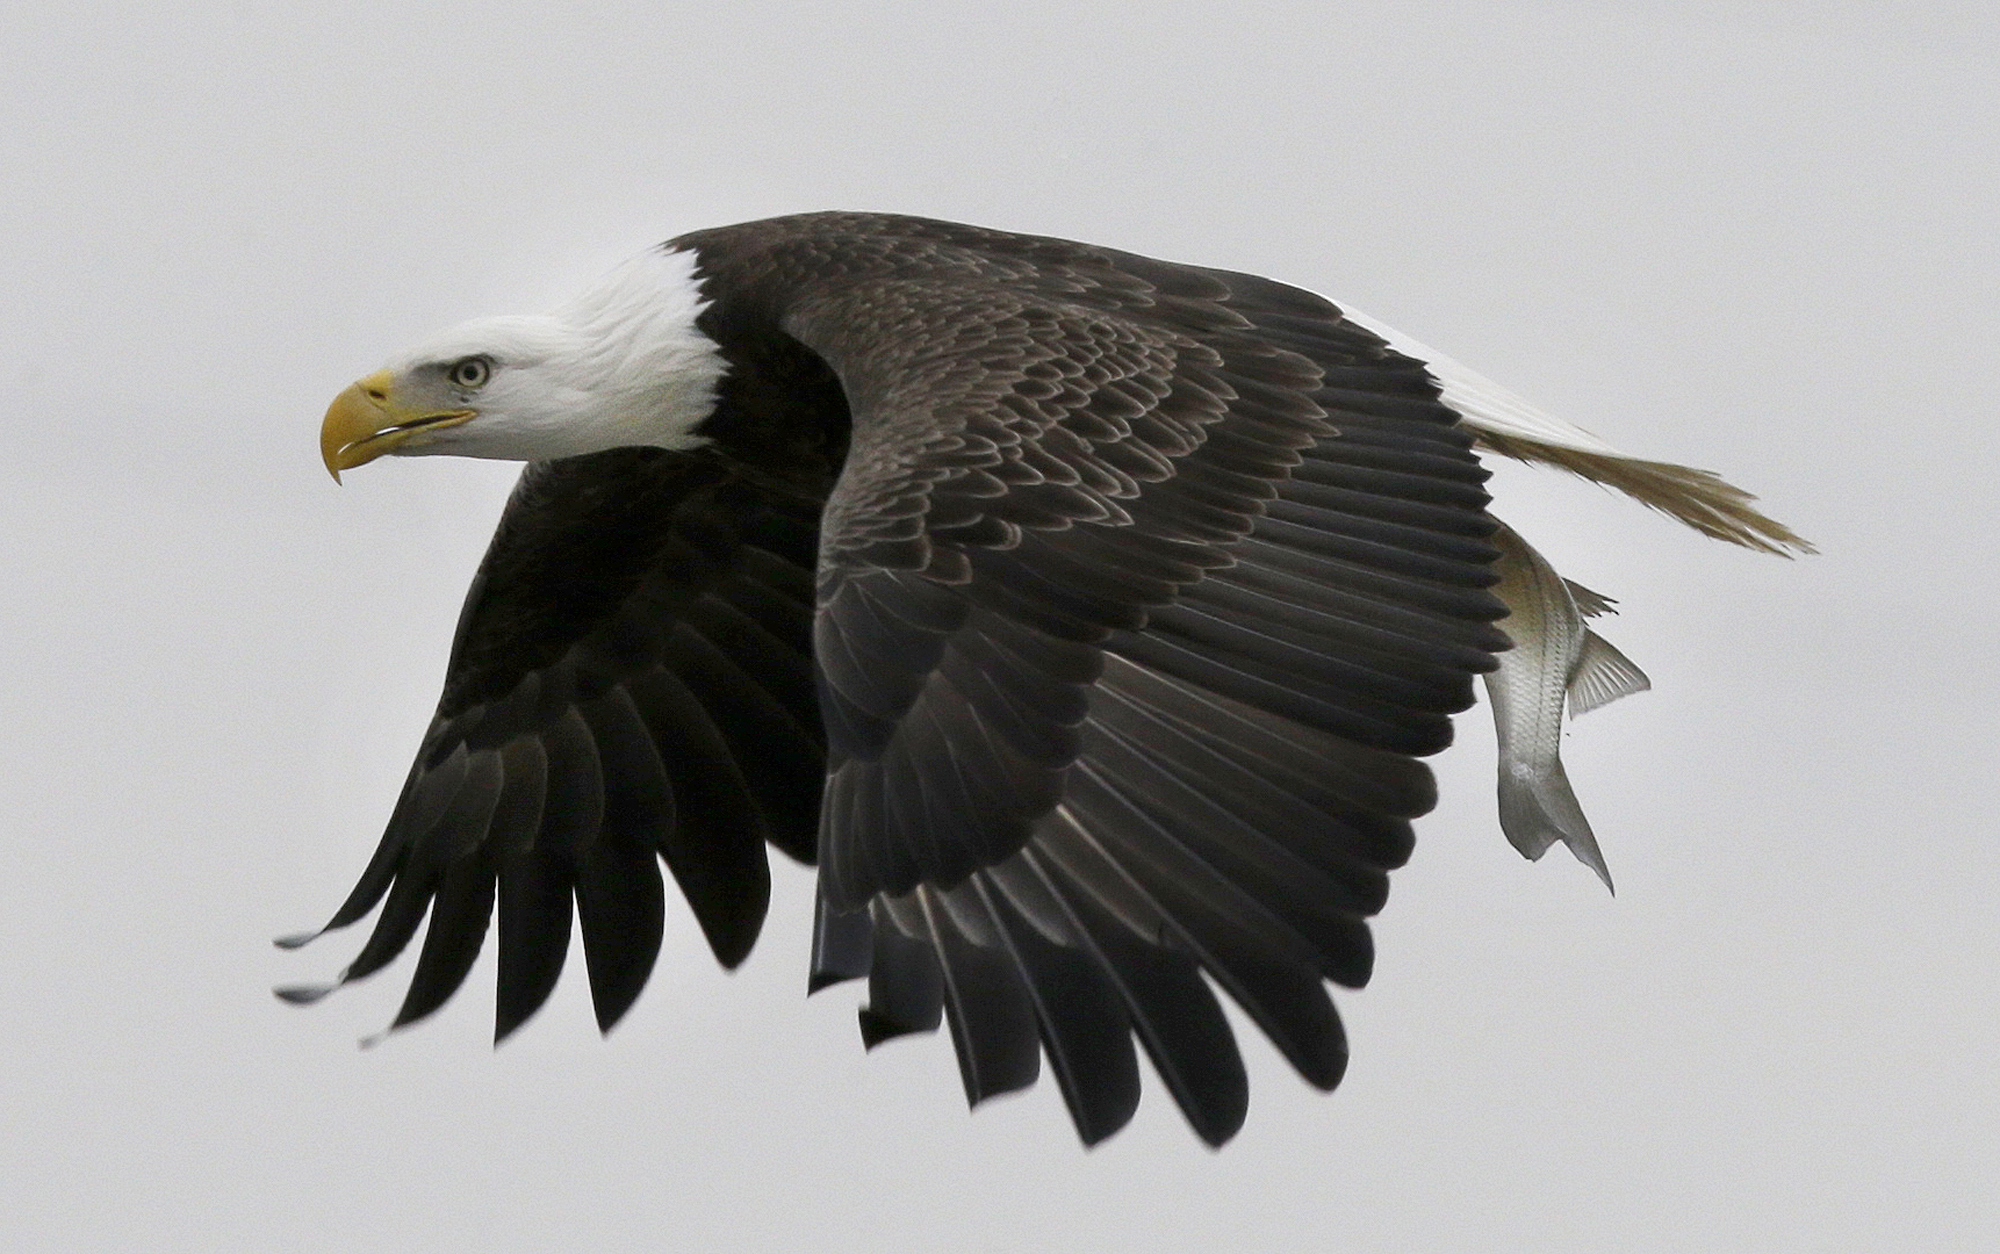 Sharpshooting U.S. veteran frees trapped bald eagle in Minnesota